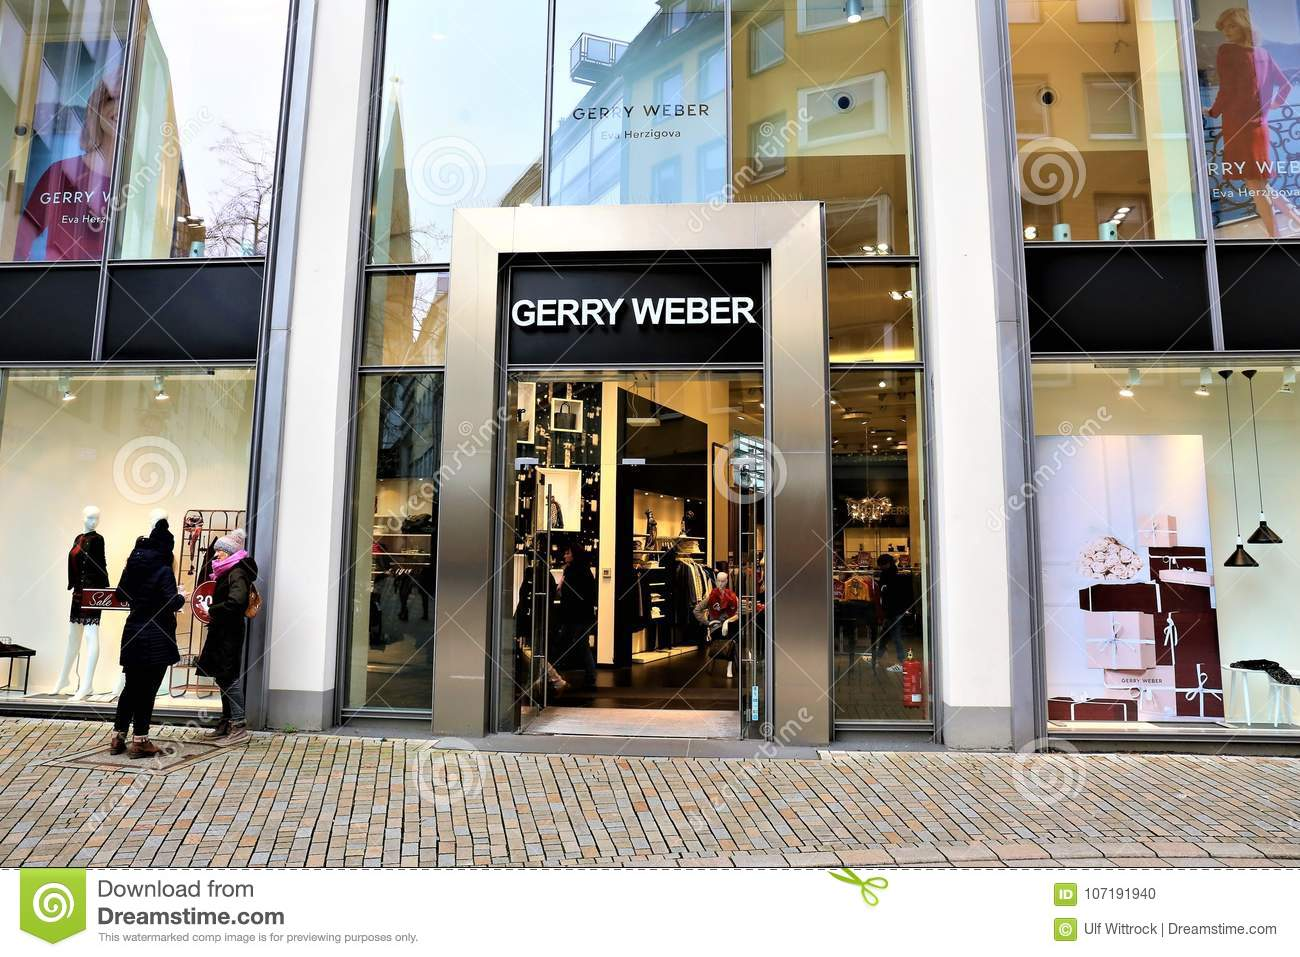 Bielefeld Shopping 01 06 2017 Bielefeld Germany An Concept Image Of A Gerry Weber